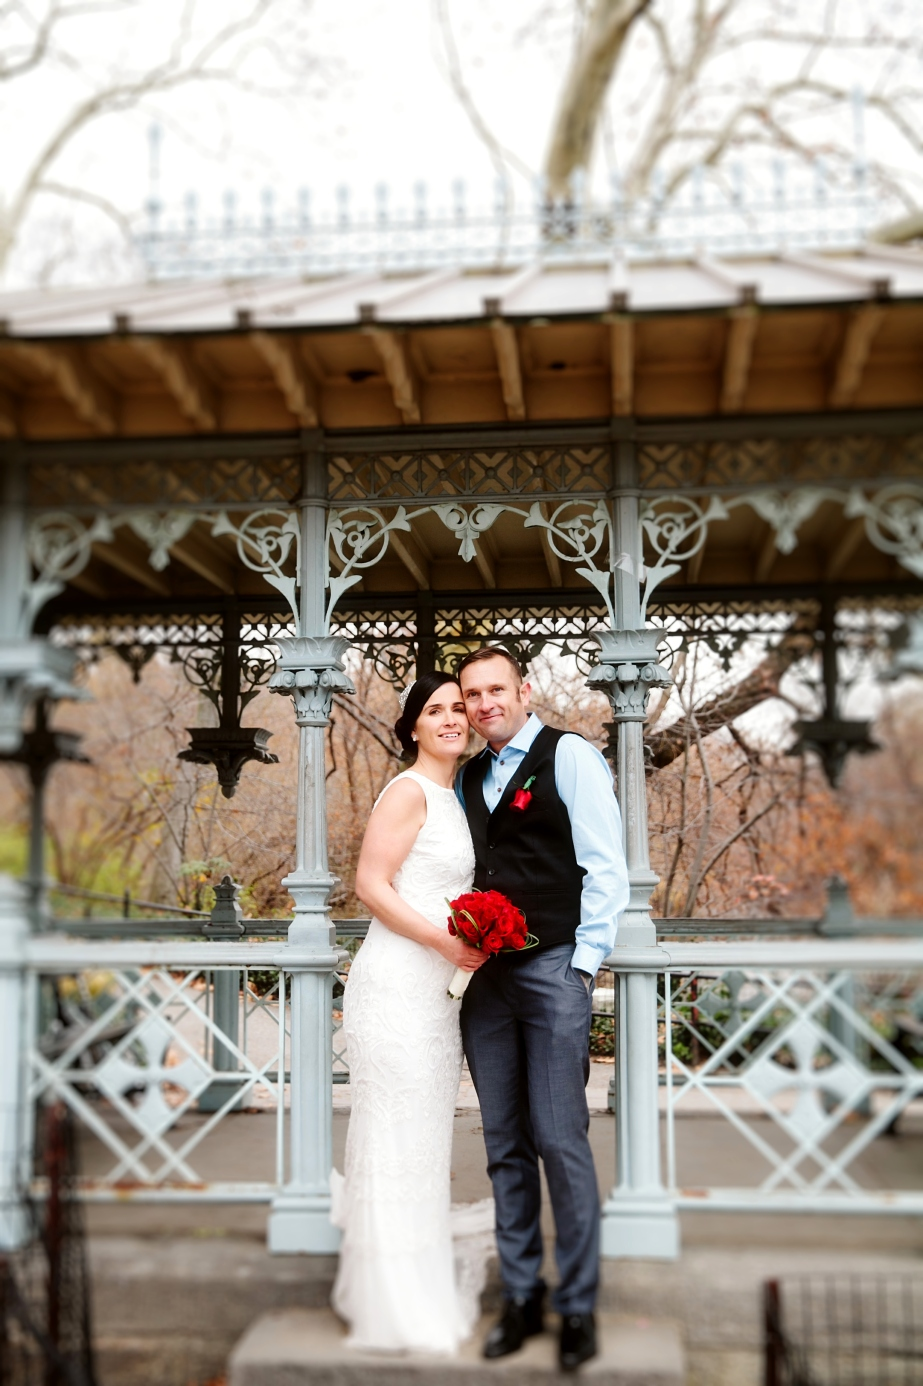 JD_centralpark_wedding-147